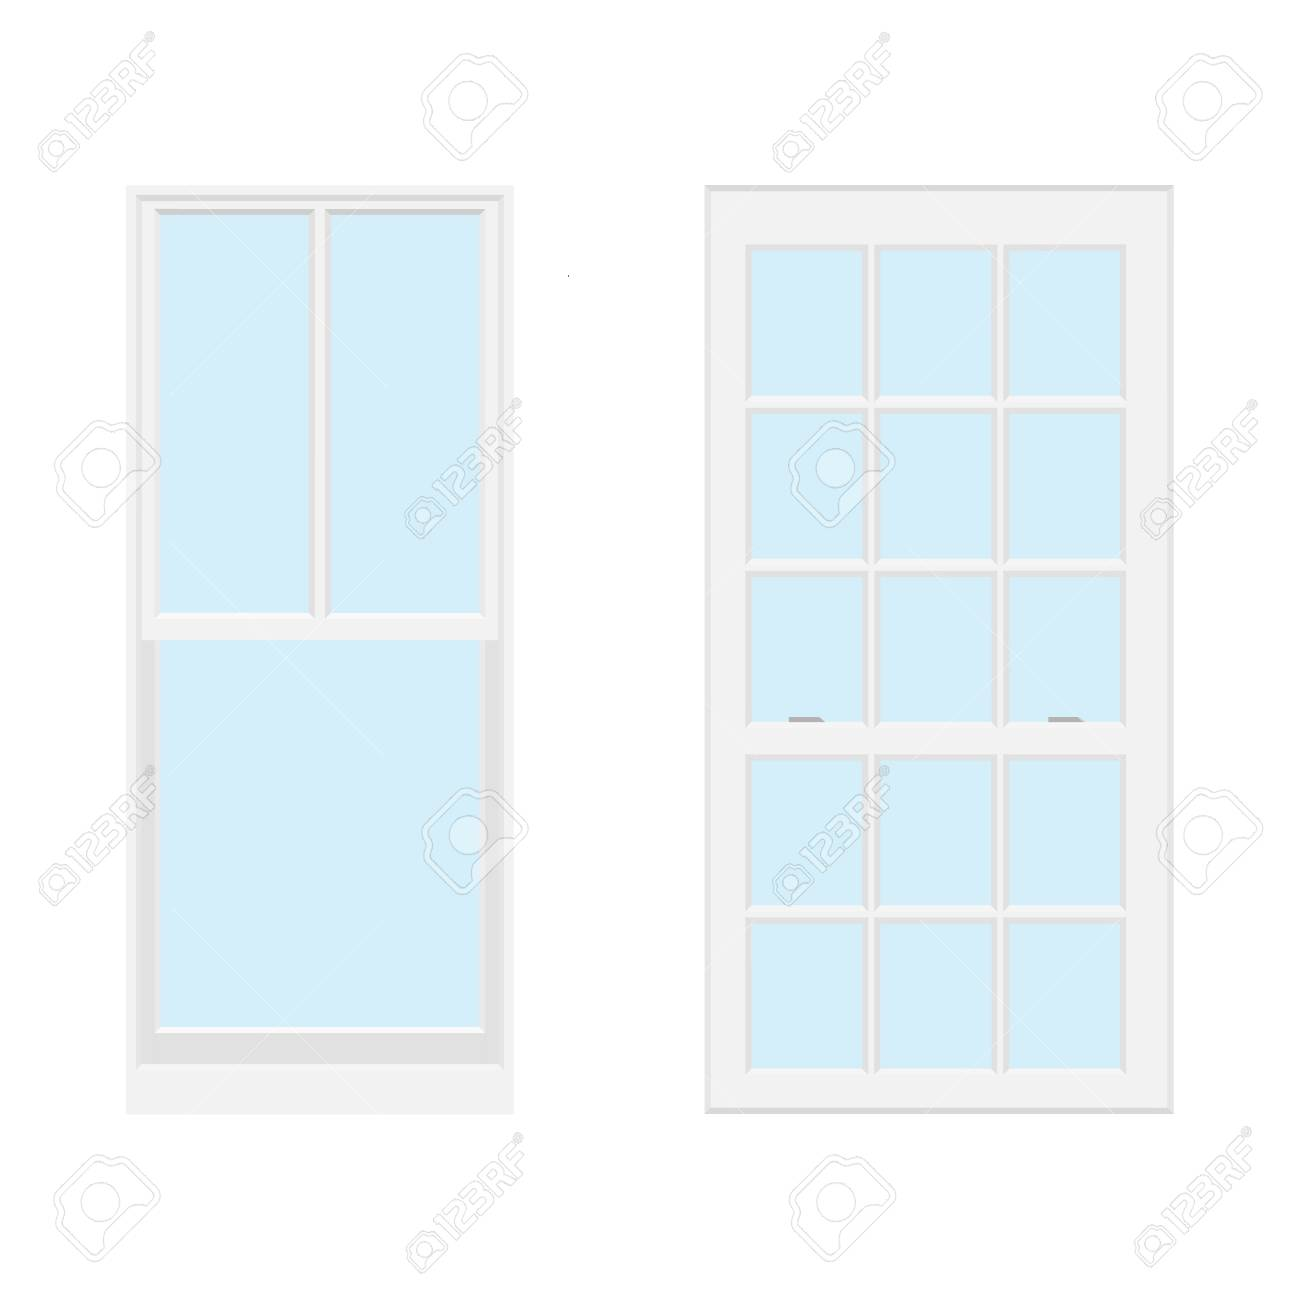 Raster Collection Of Various Windows Types For Interior And Stock Photo Picture And Royalty Free Image Image 82834177